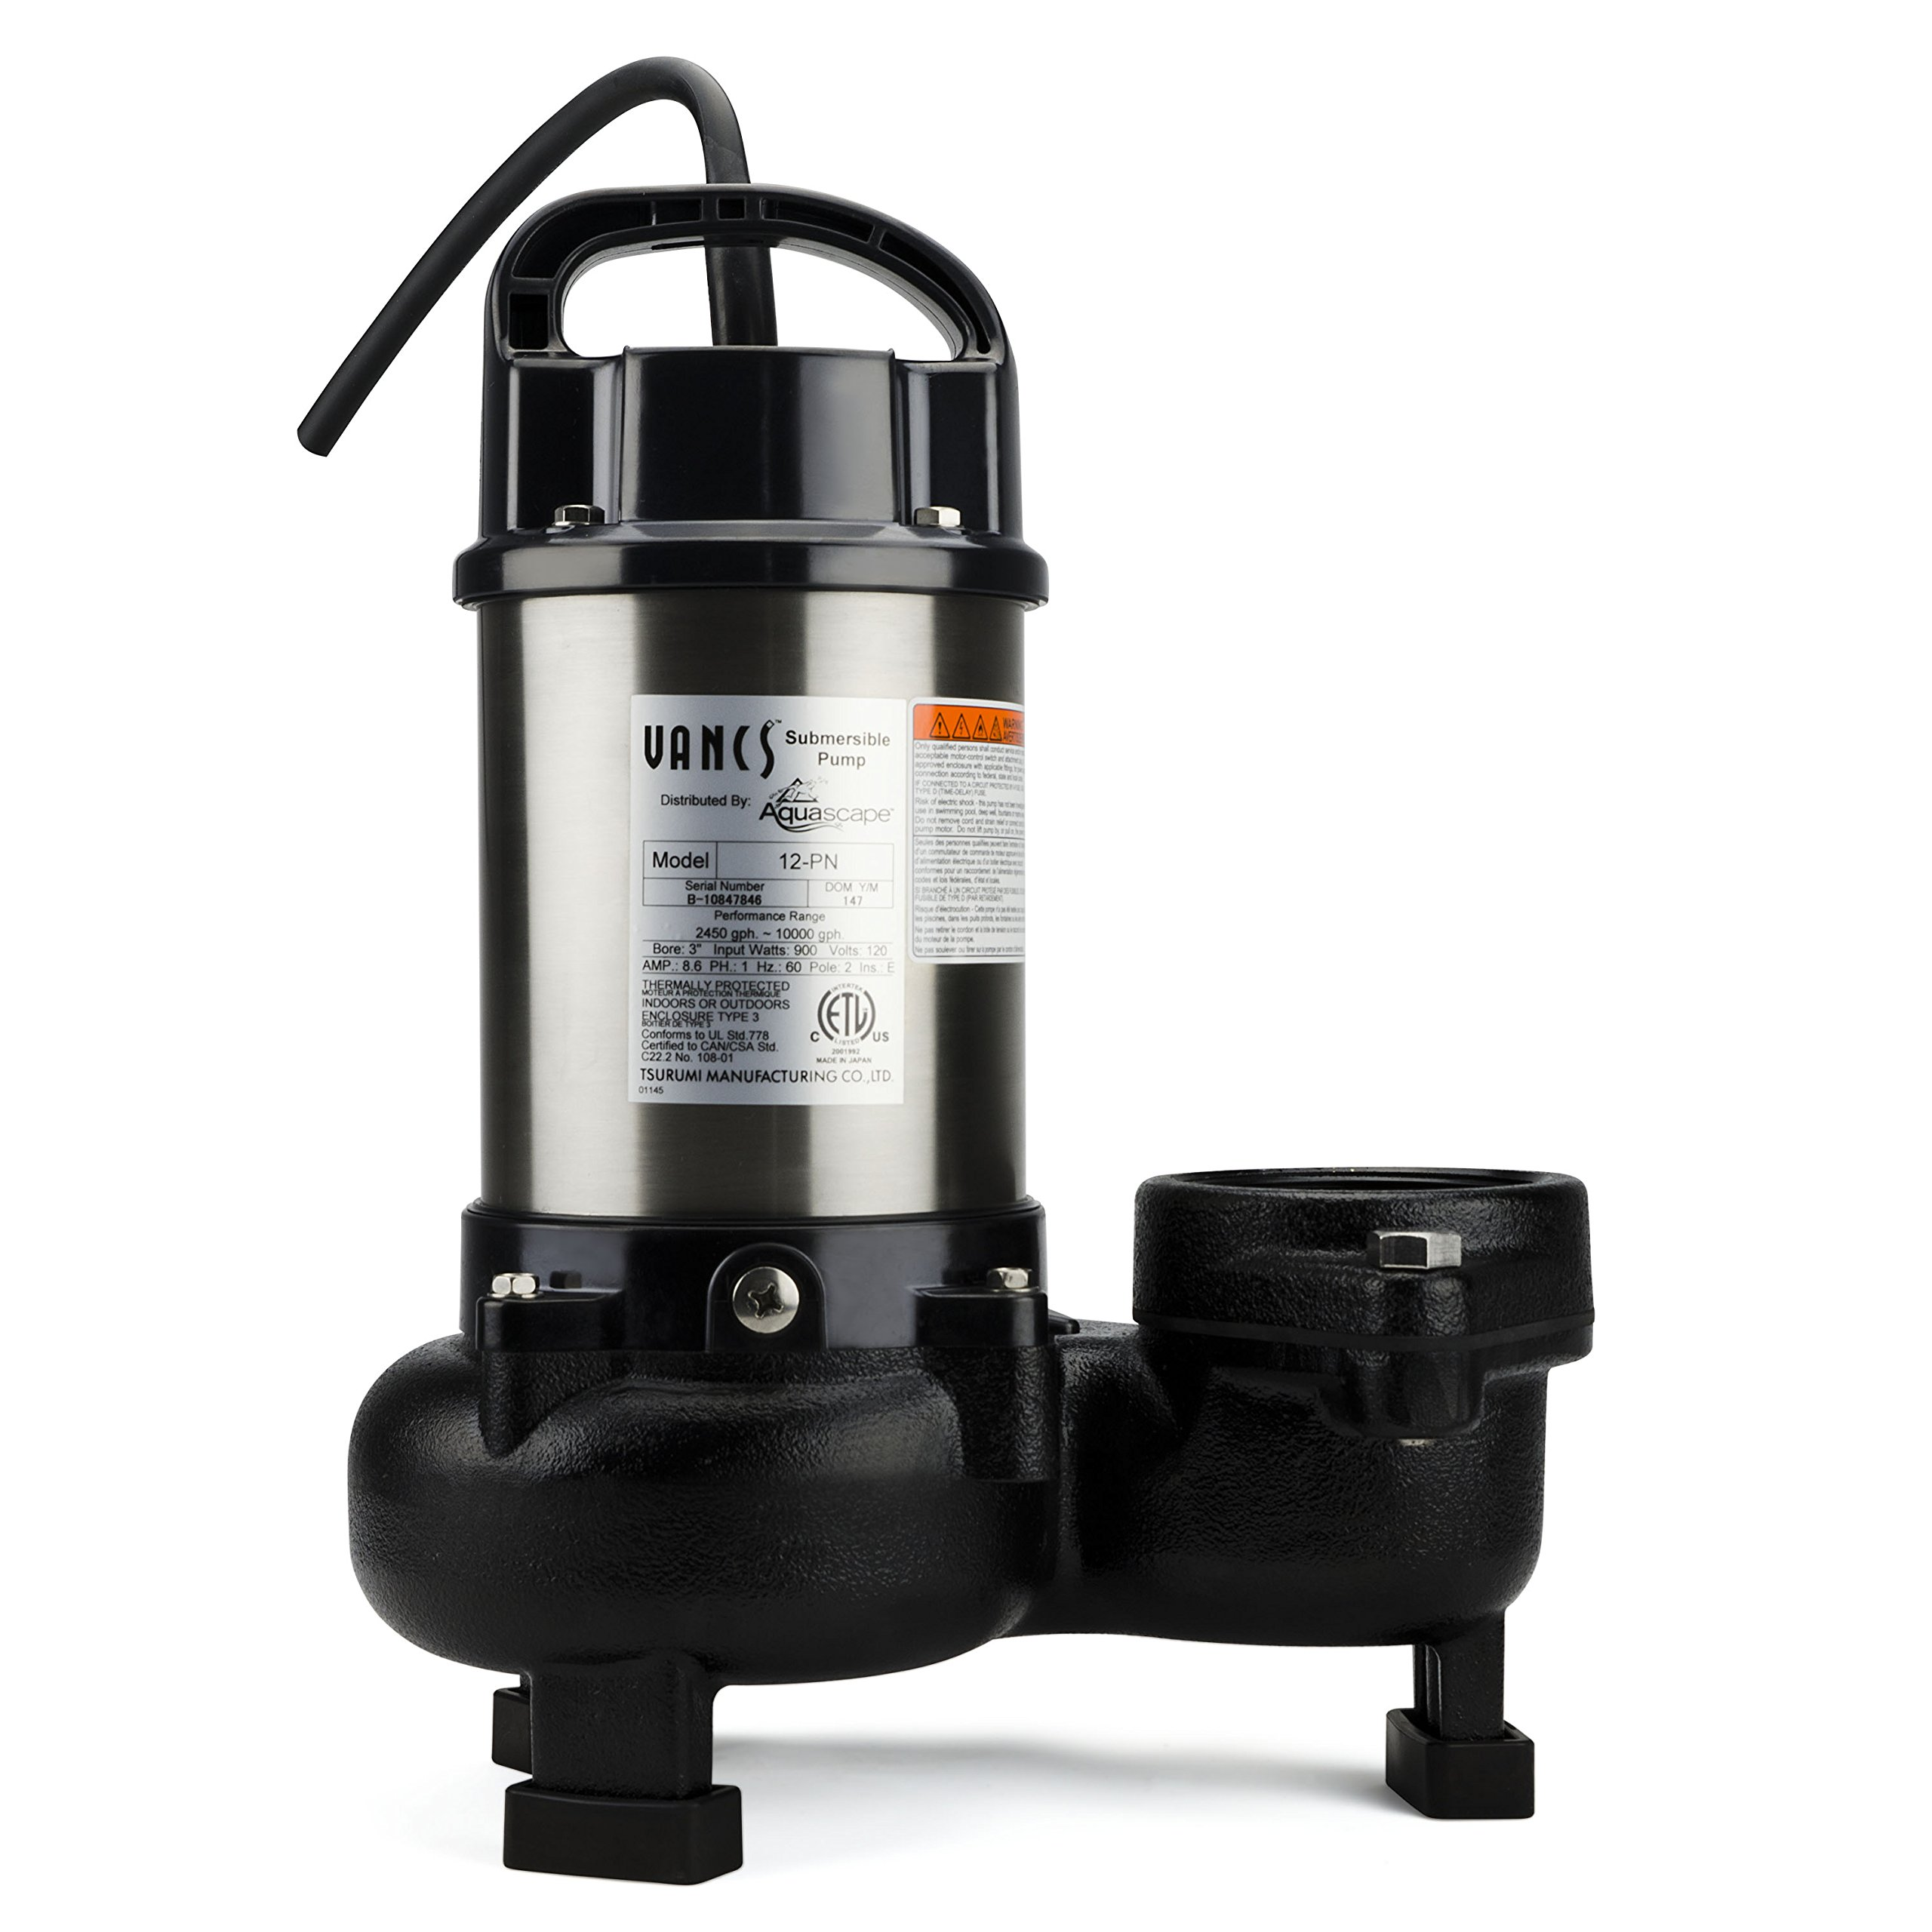 Aquascape 30391 tsurumi 12pn submersible pump for ponds for Large pond pumps and filters